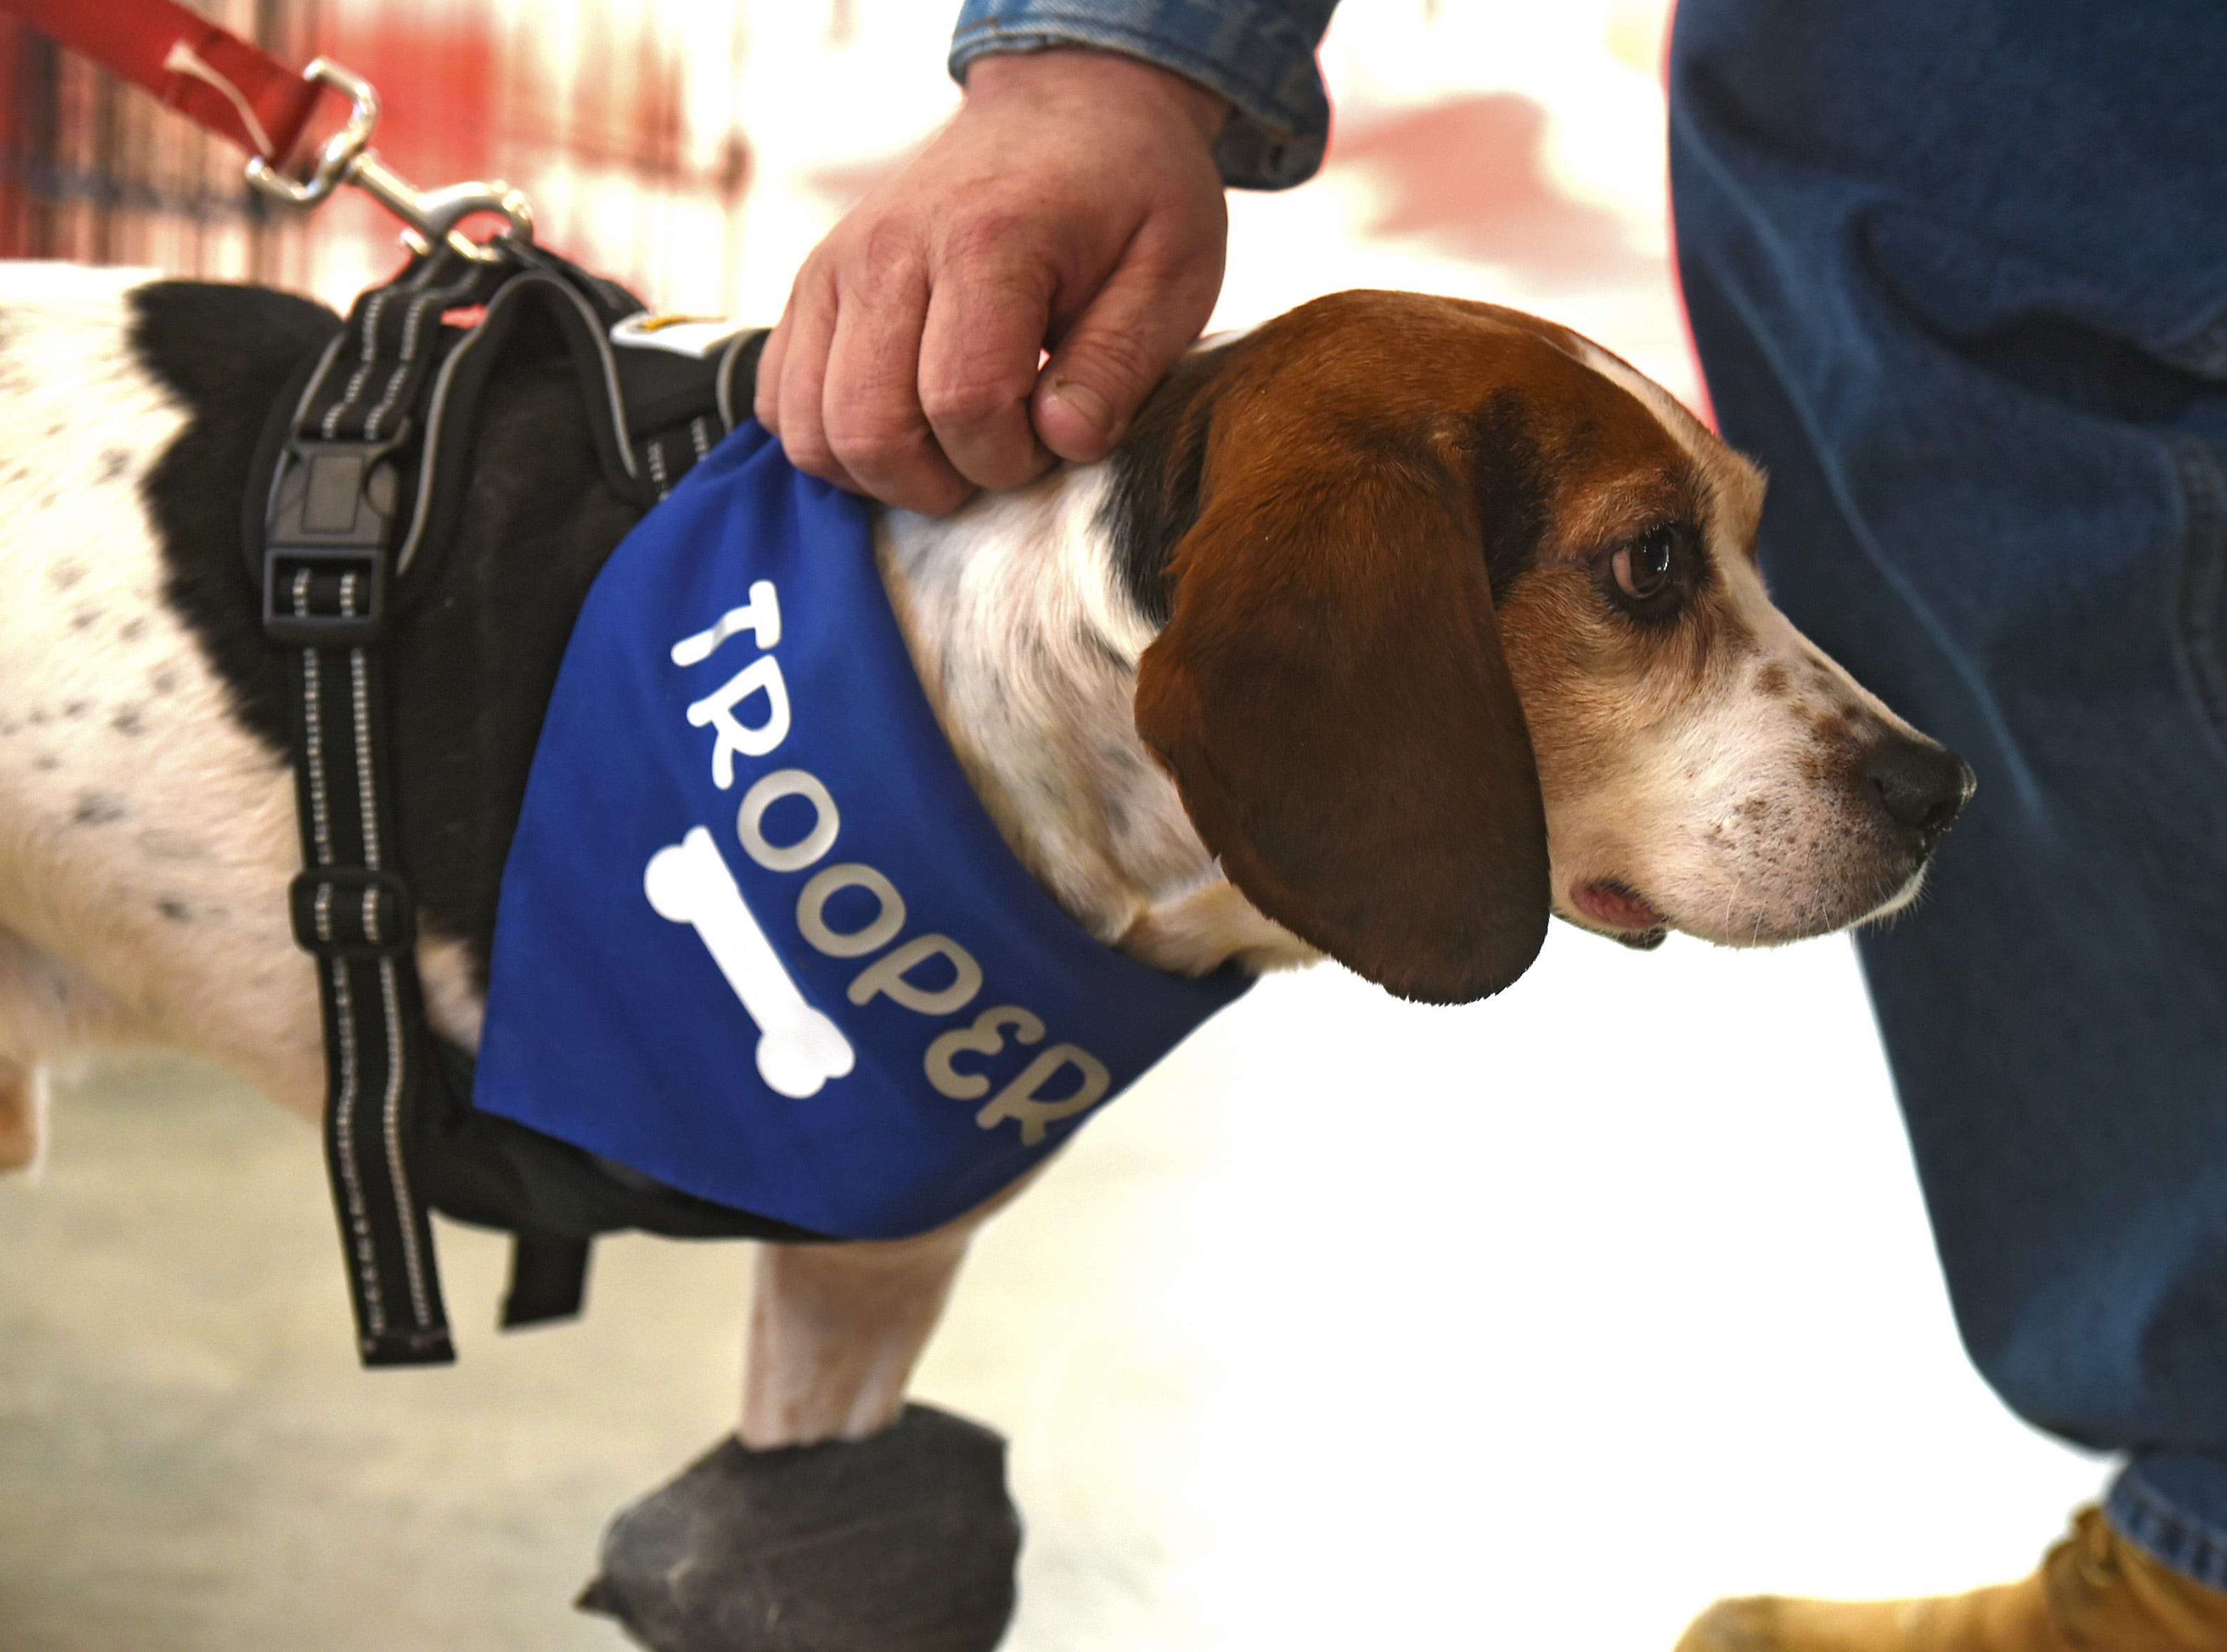 Trooper, one of two beagles thrown from a vehicle in December. Named Trooper and Adam for the state trooper and truck driver who rescued them, the pair are in the care of the Binghamton shelter. Trooper had to have one leg amputated due to the injury he sustained but is recovering well. January 11, 2019.